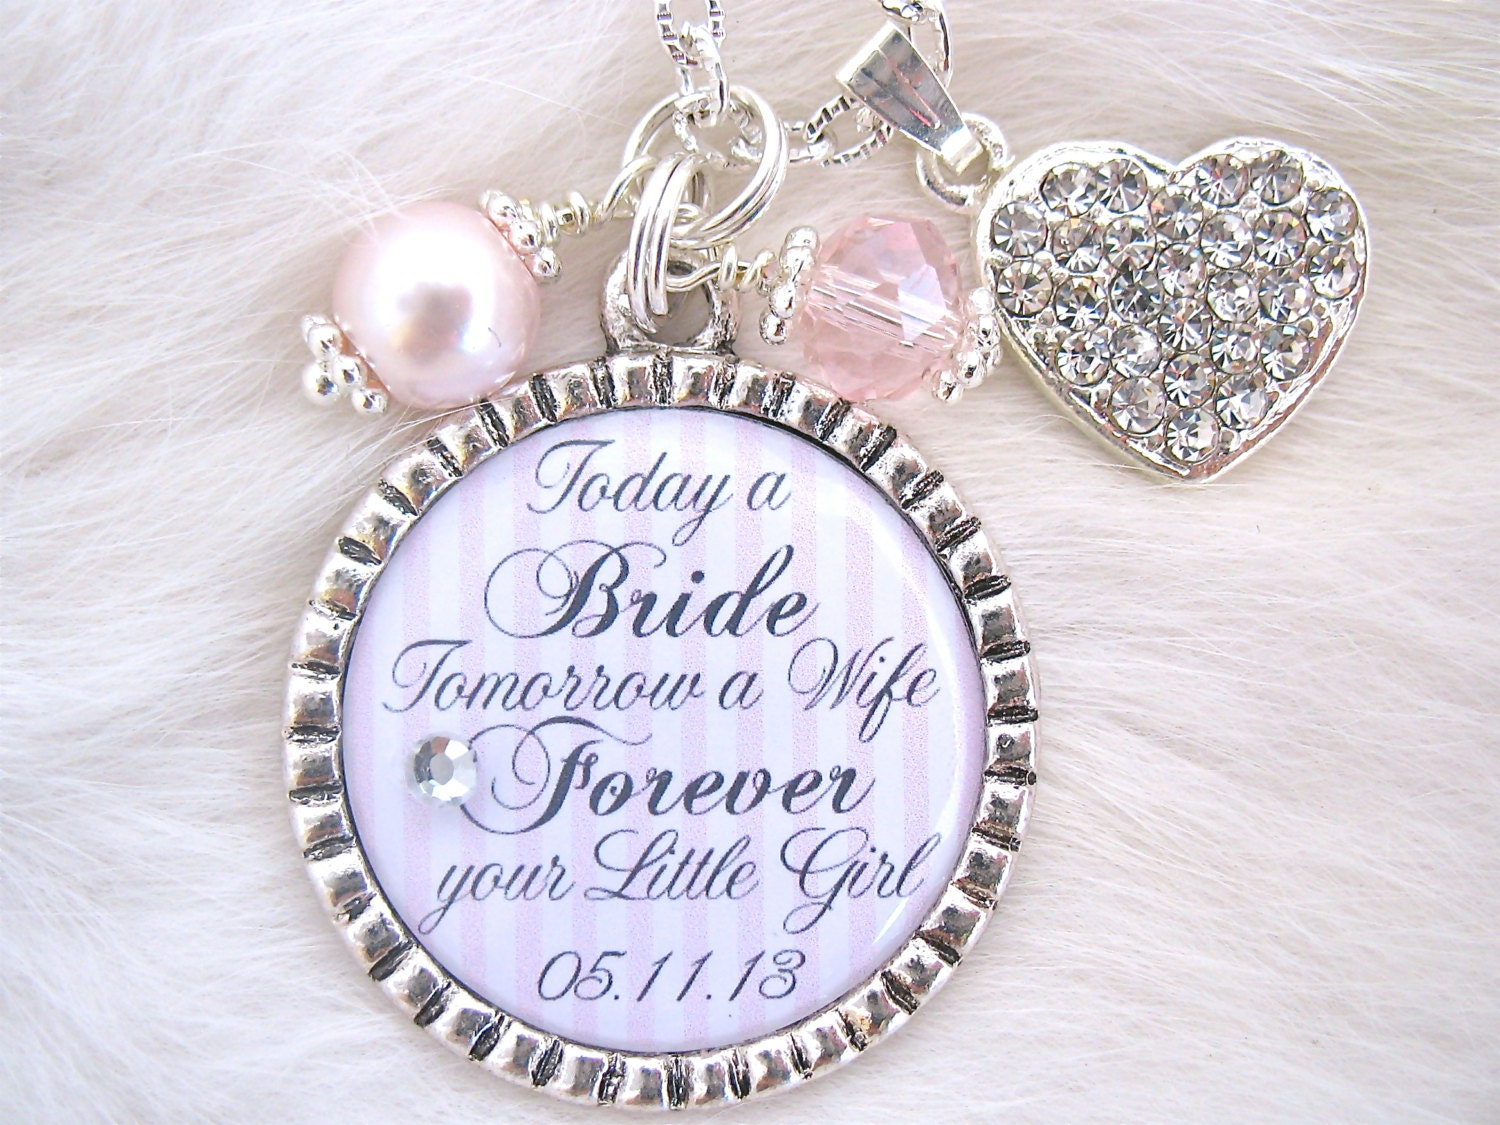 Grooms Gift To Mom: MOTHER Of The BRIDE Gift Mother Of The Groom Today A Bride